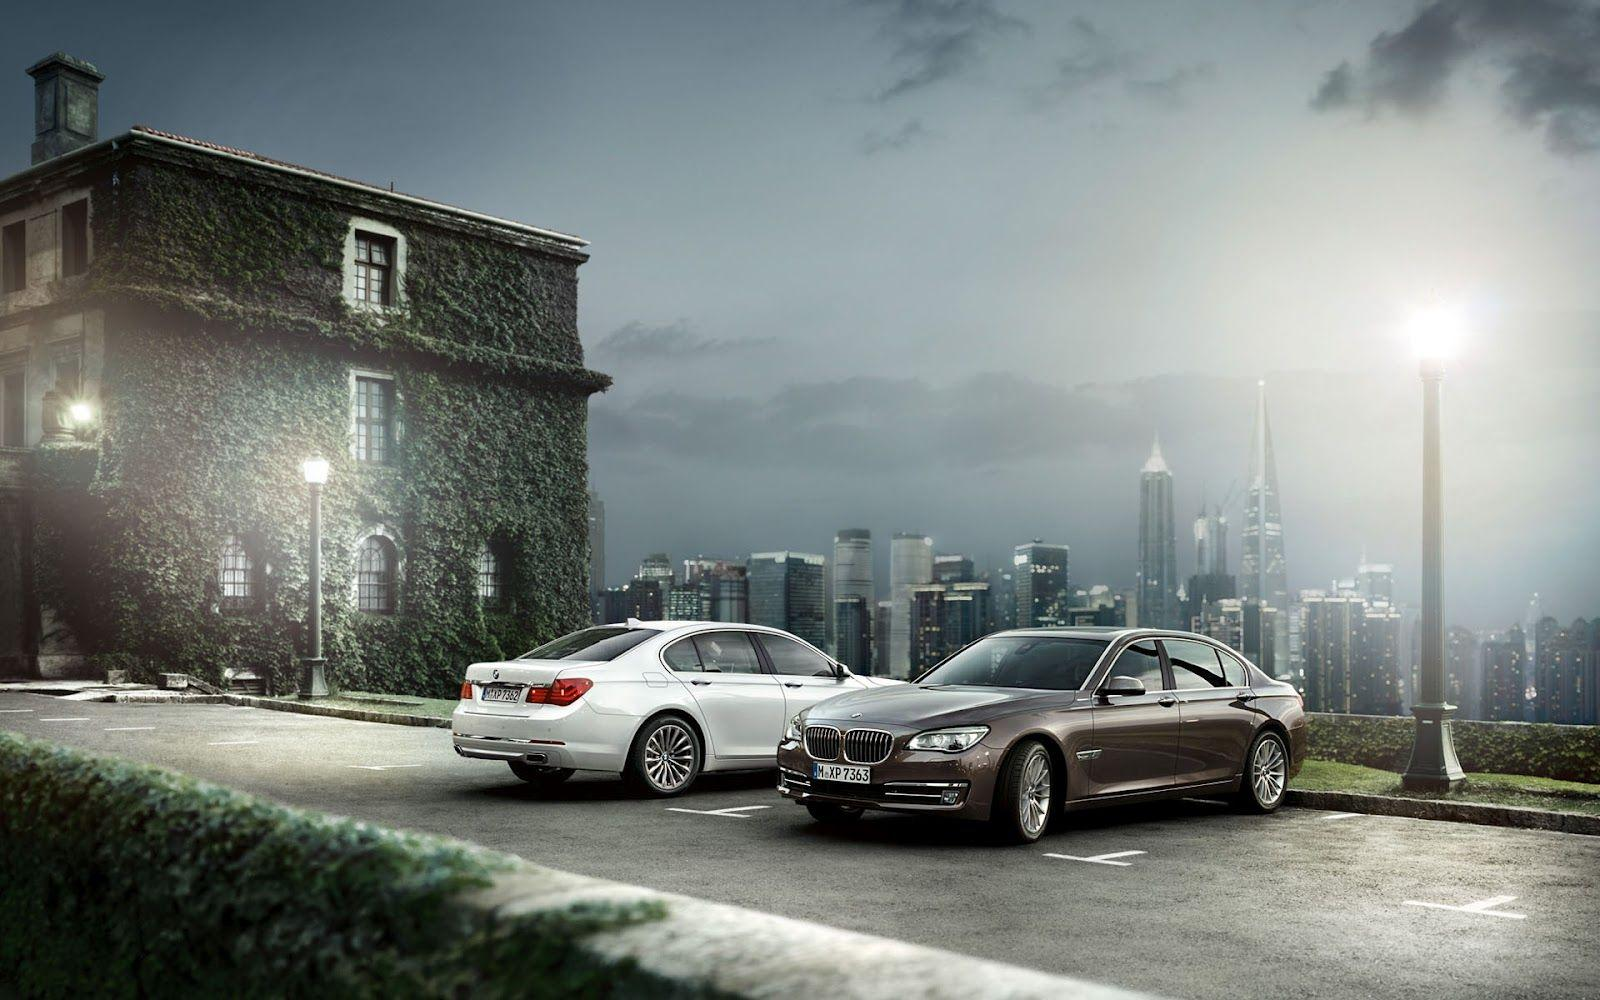 2013 BMW 7 Series LCI Facelift Wallpapers.